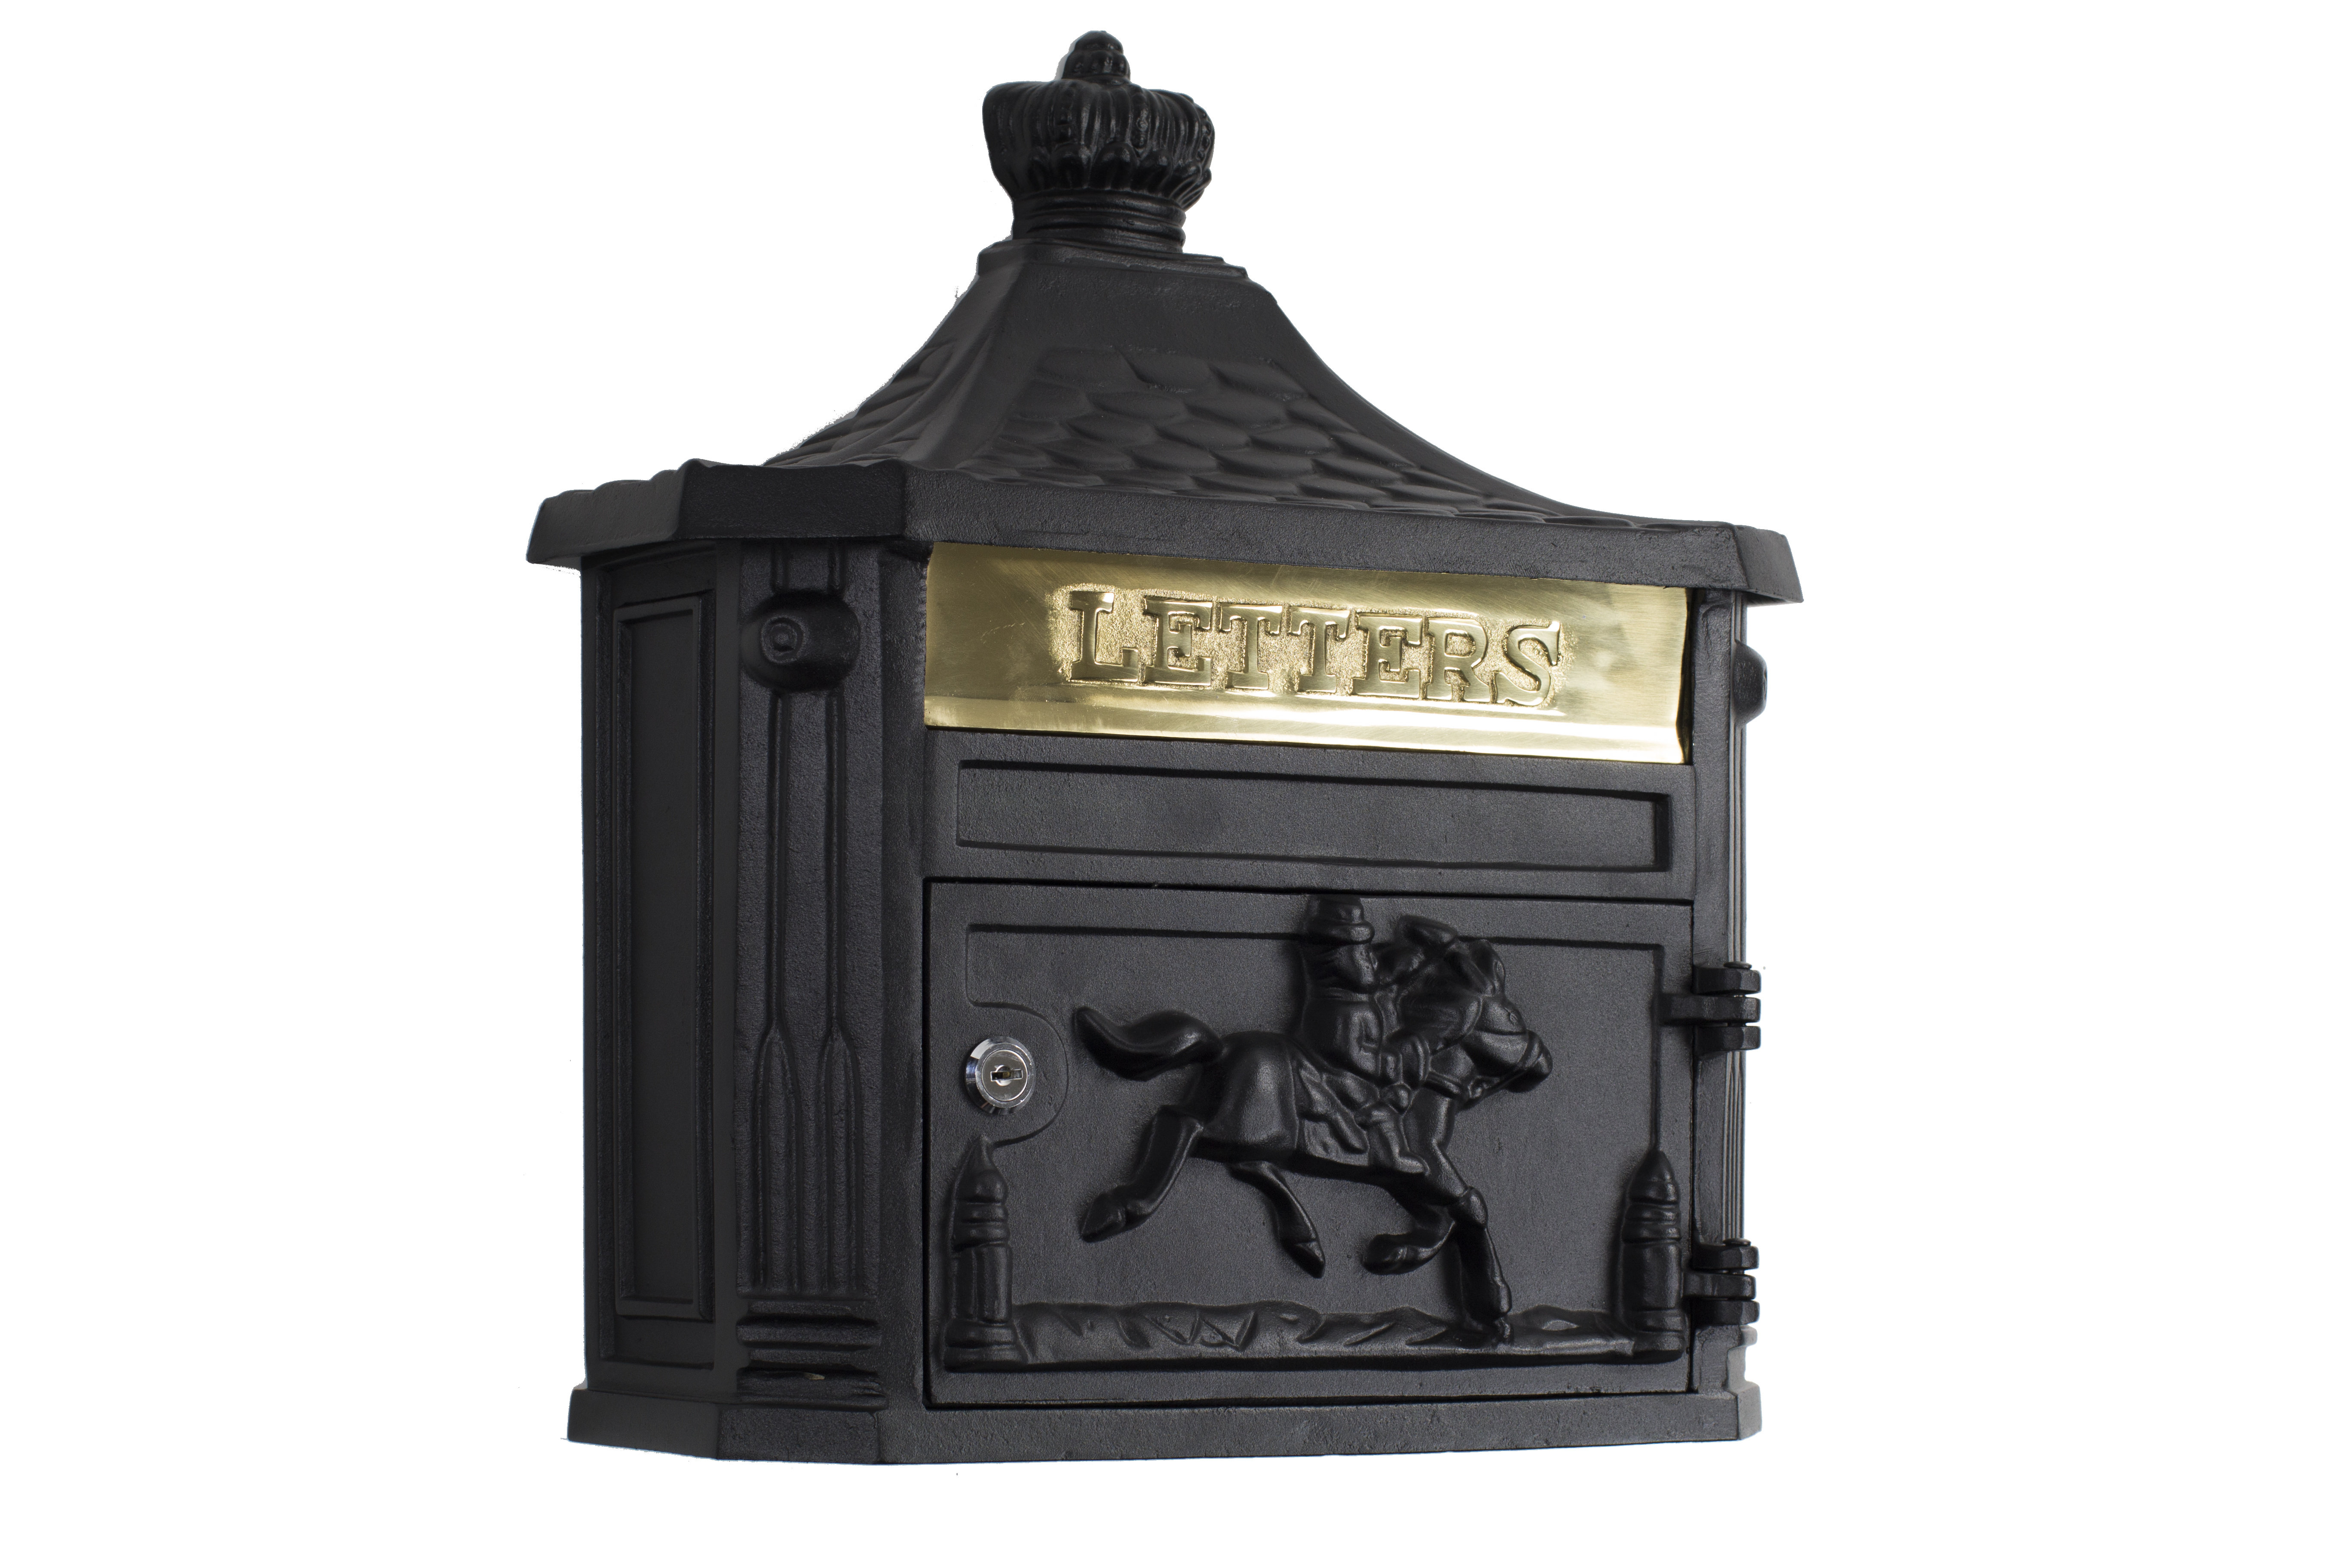 Amco Mailboxes Victorian Locking Wall Mounted Mailbox Pertaining To Lacordaire Wall Mounted Mailbox (View 20 of 30)